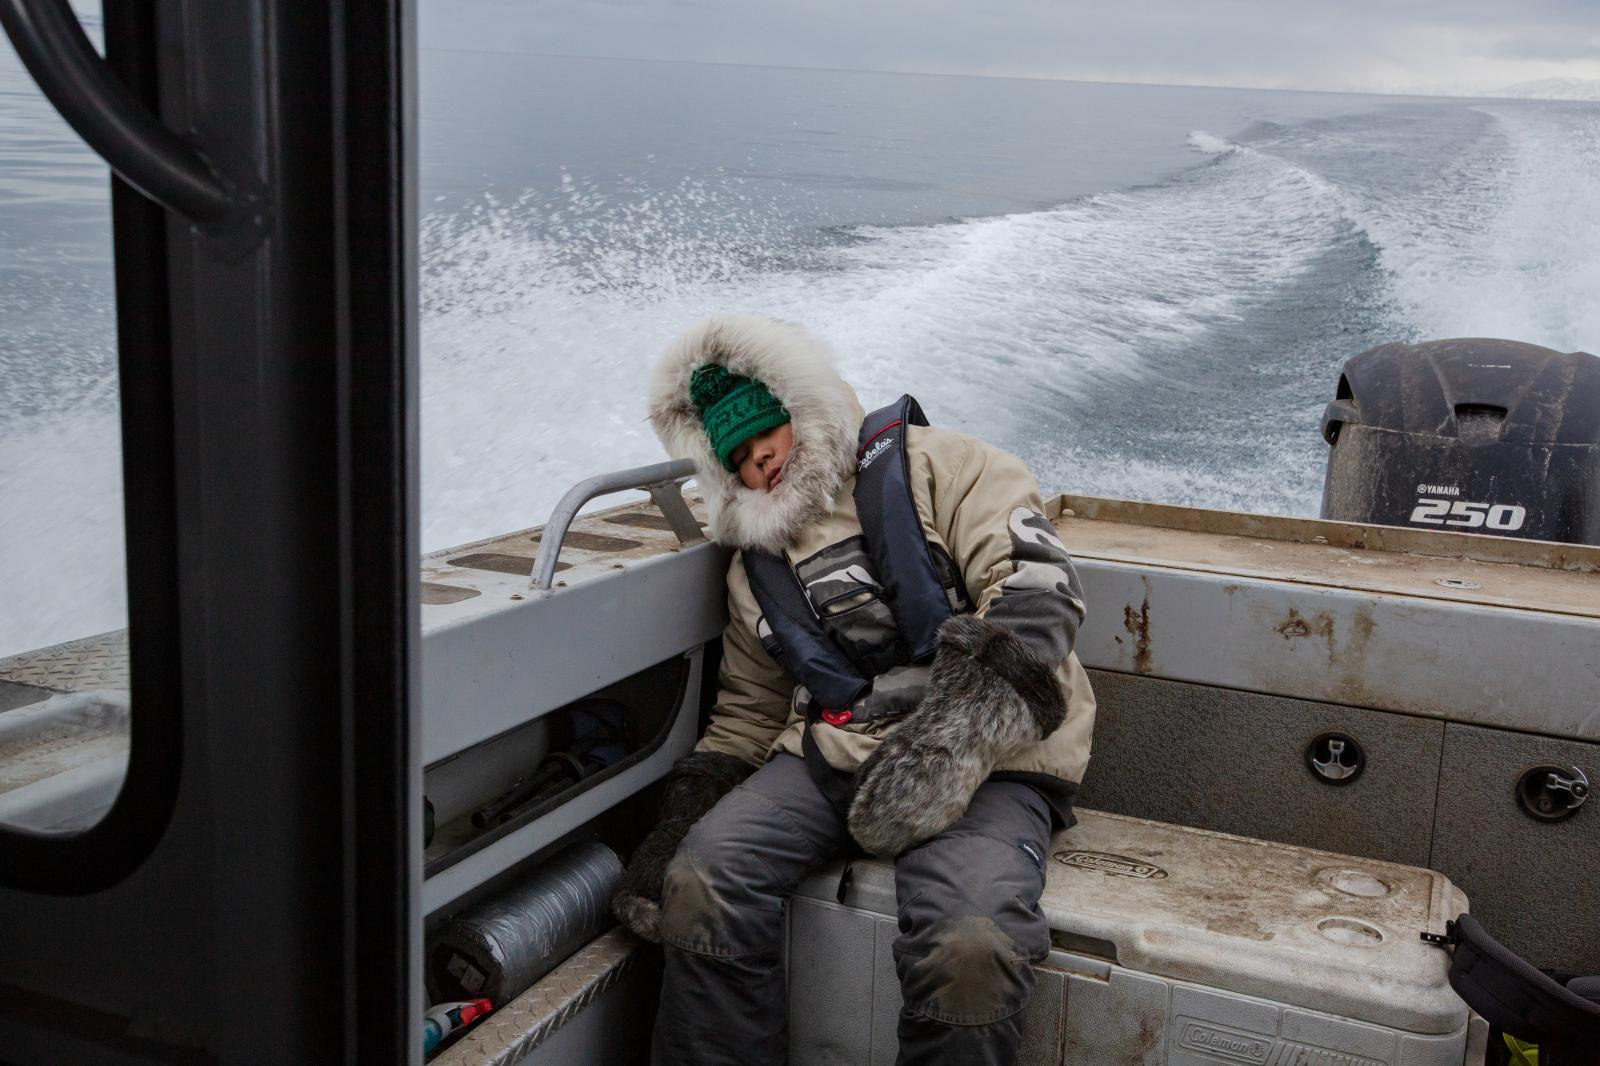 At the end of Kaniq's first hunt in November of 2018, he falls asleep at the back of the boat.